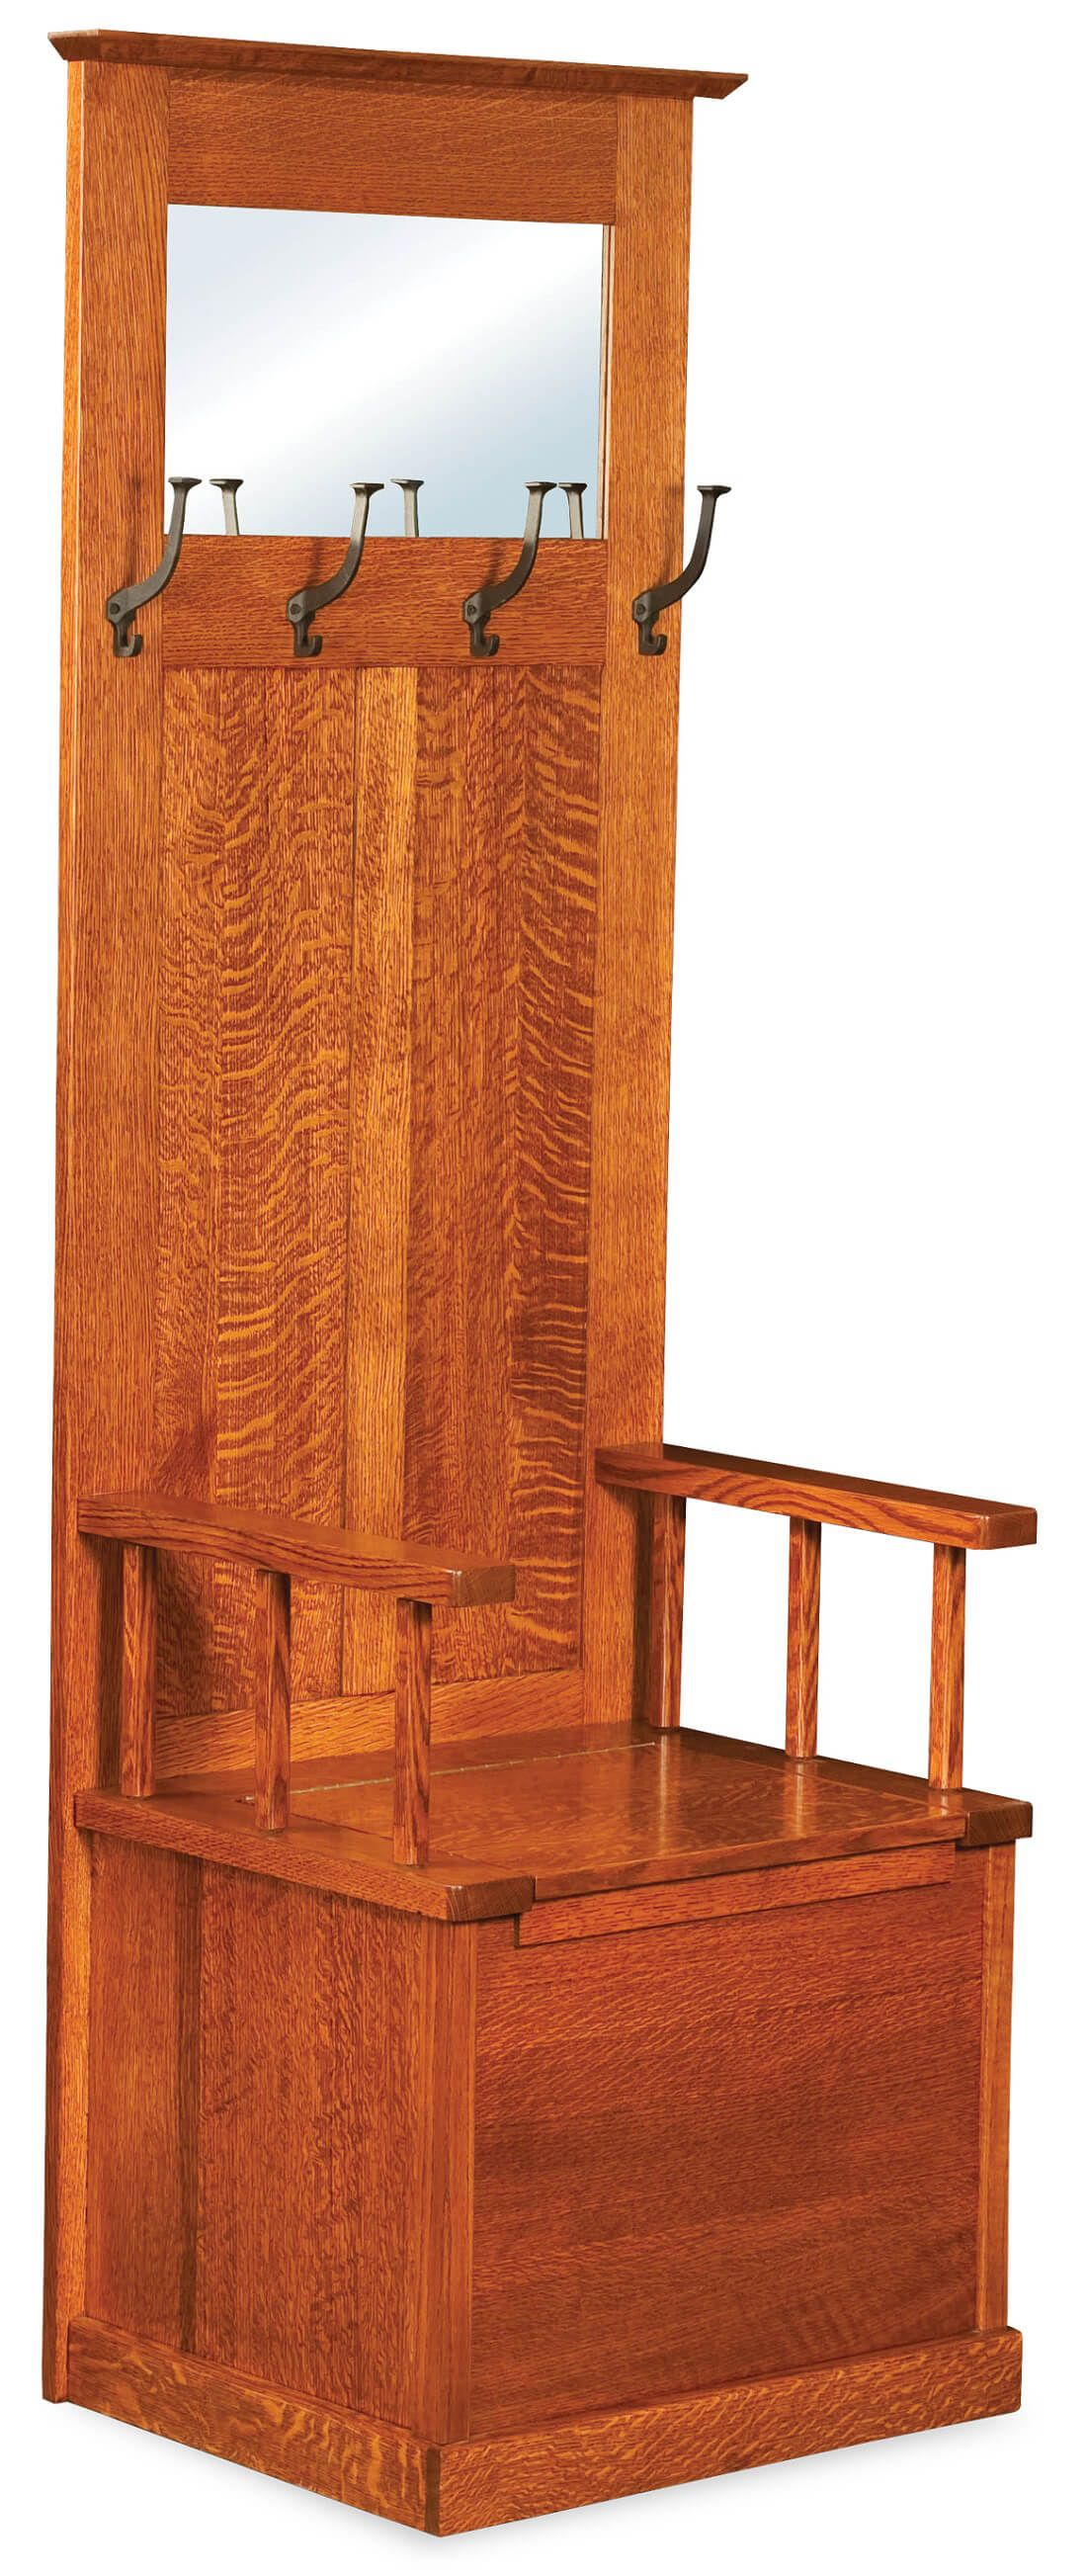 Rock Harbor Solid Wood Hall Tree Countryside Amish Furniture